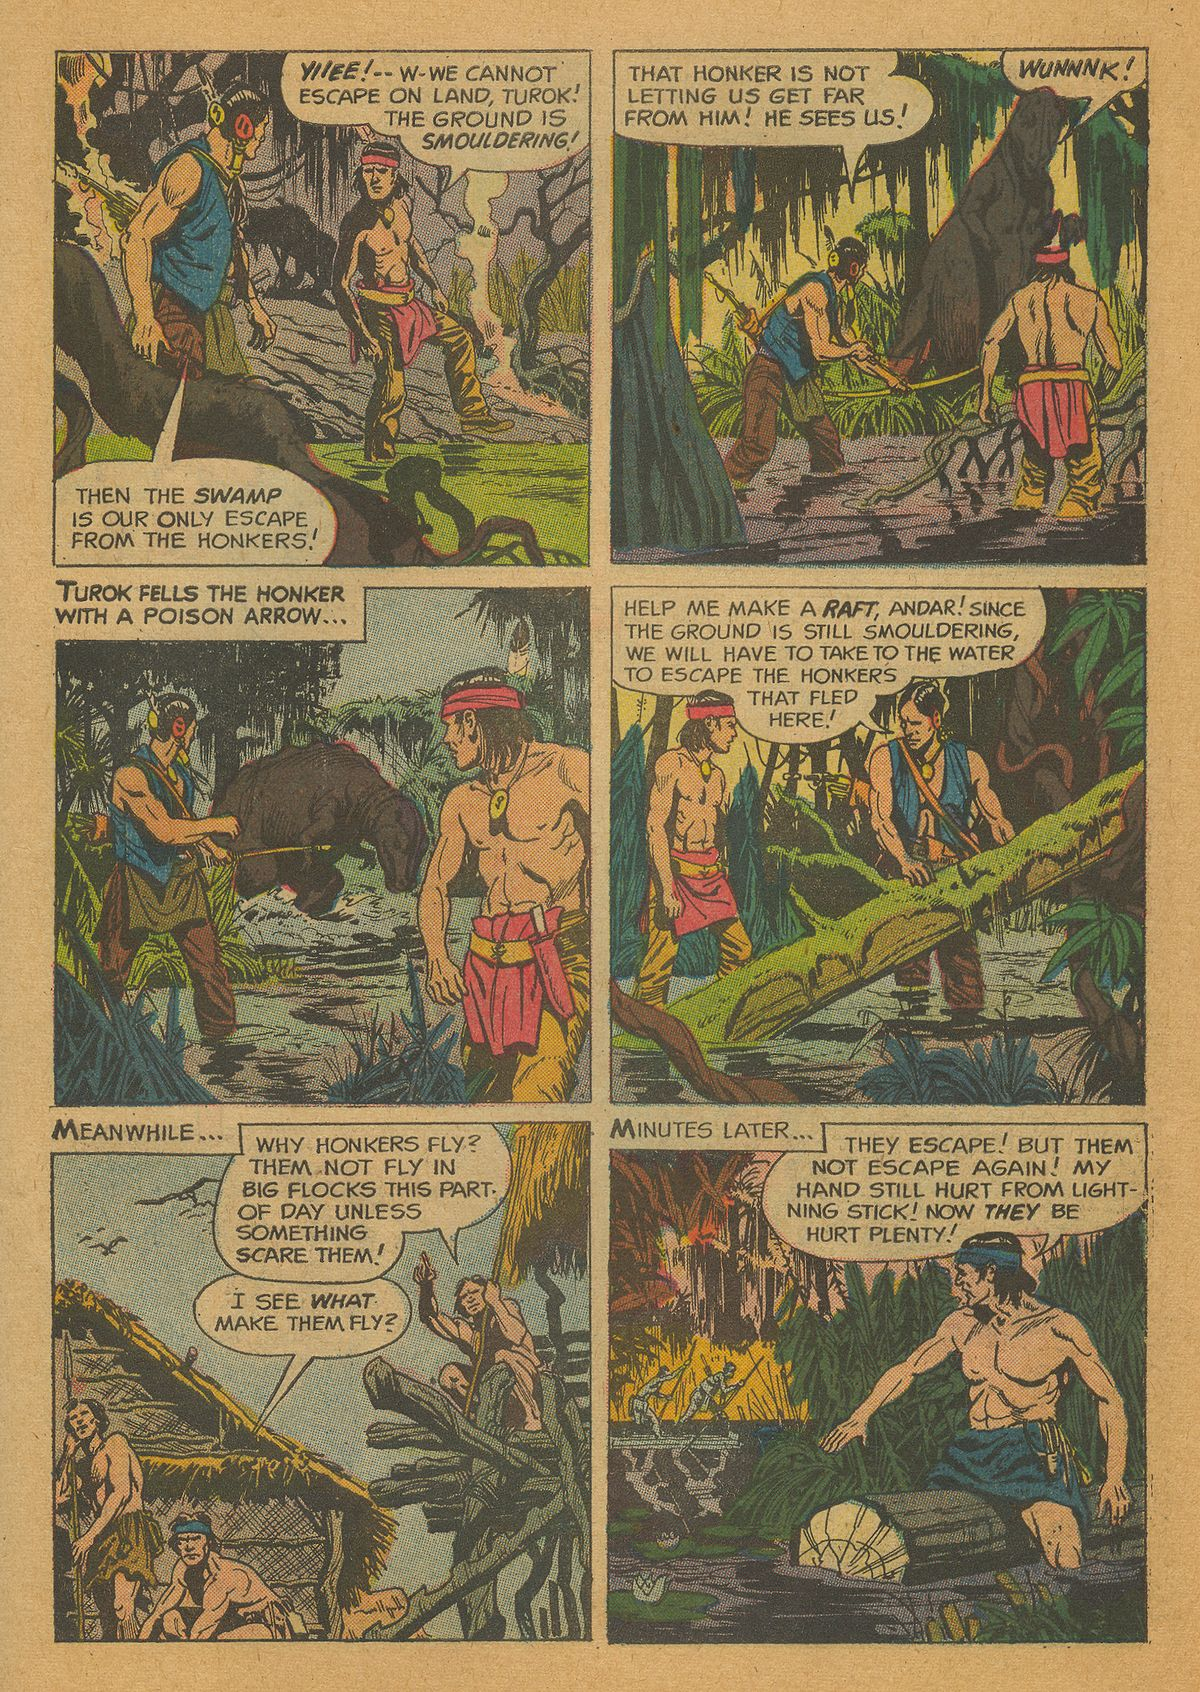 Read online Turok, Son of Stone comic -  Issue #26 - 26